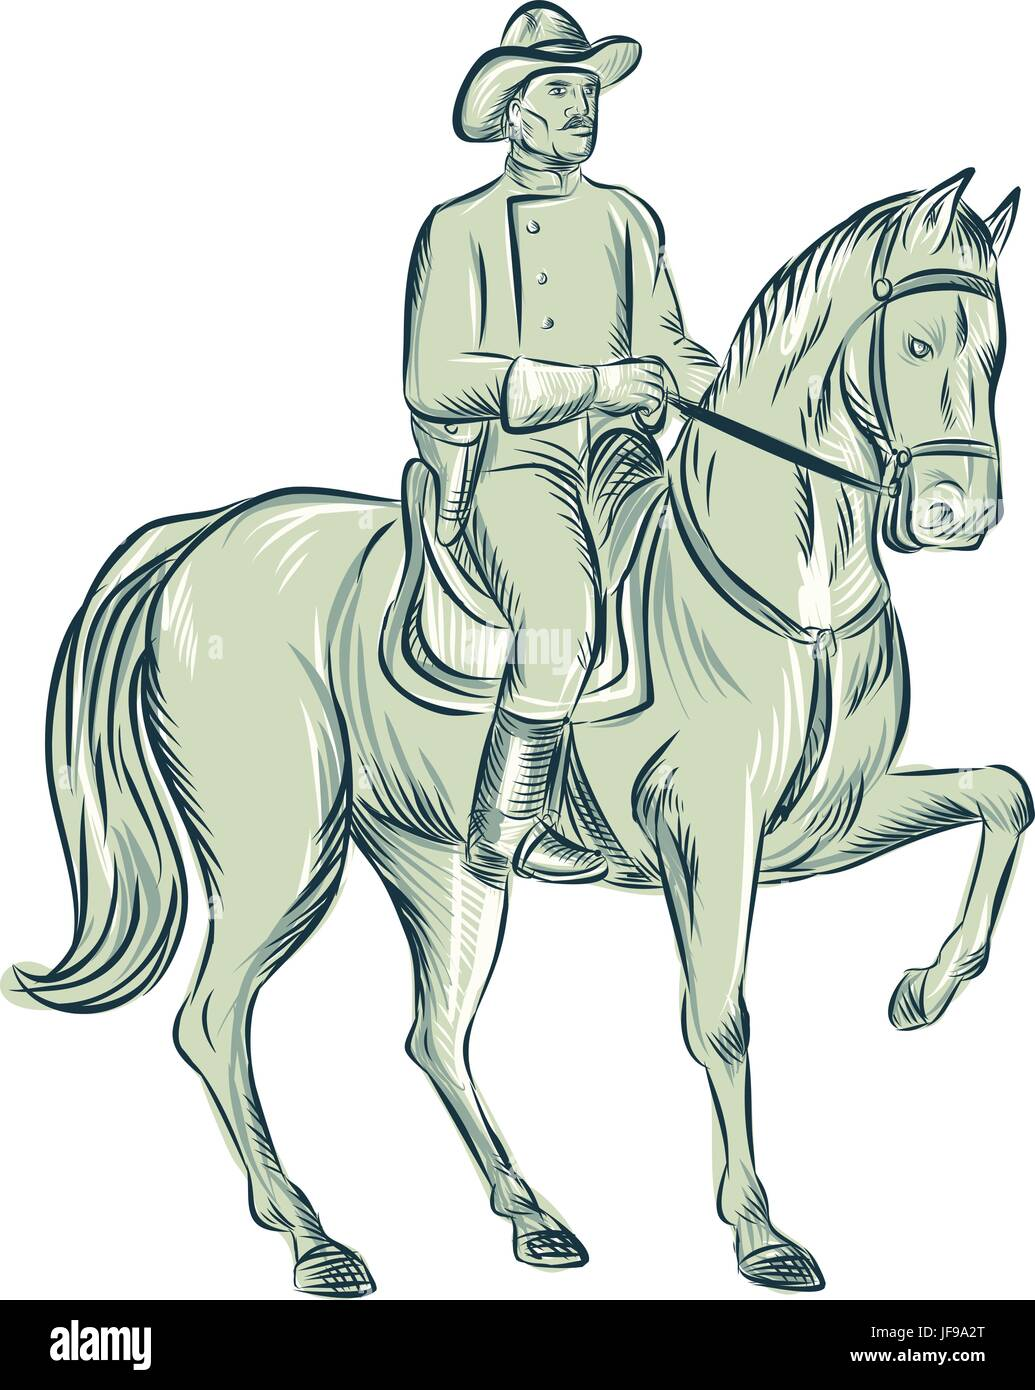 Cavalry Officer Riding Horse Etching - Stock Vector